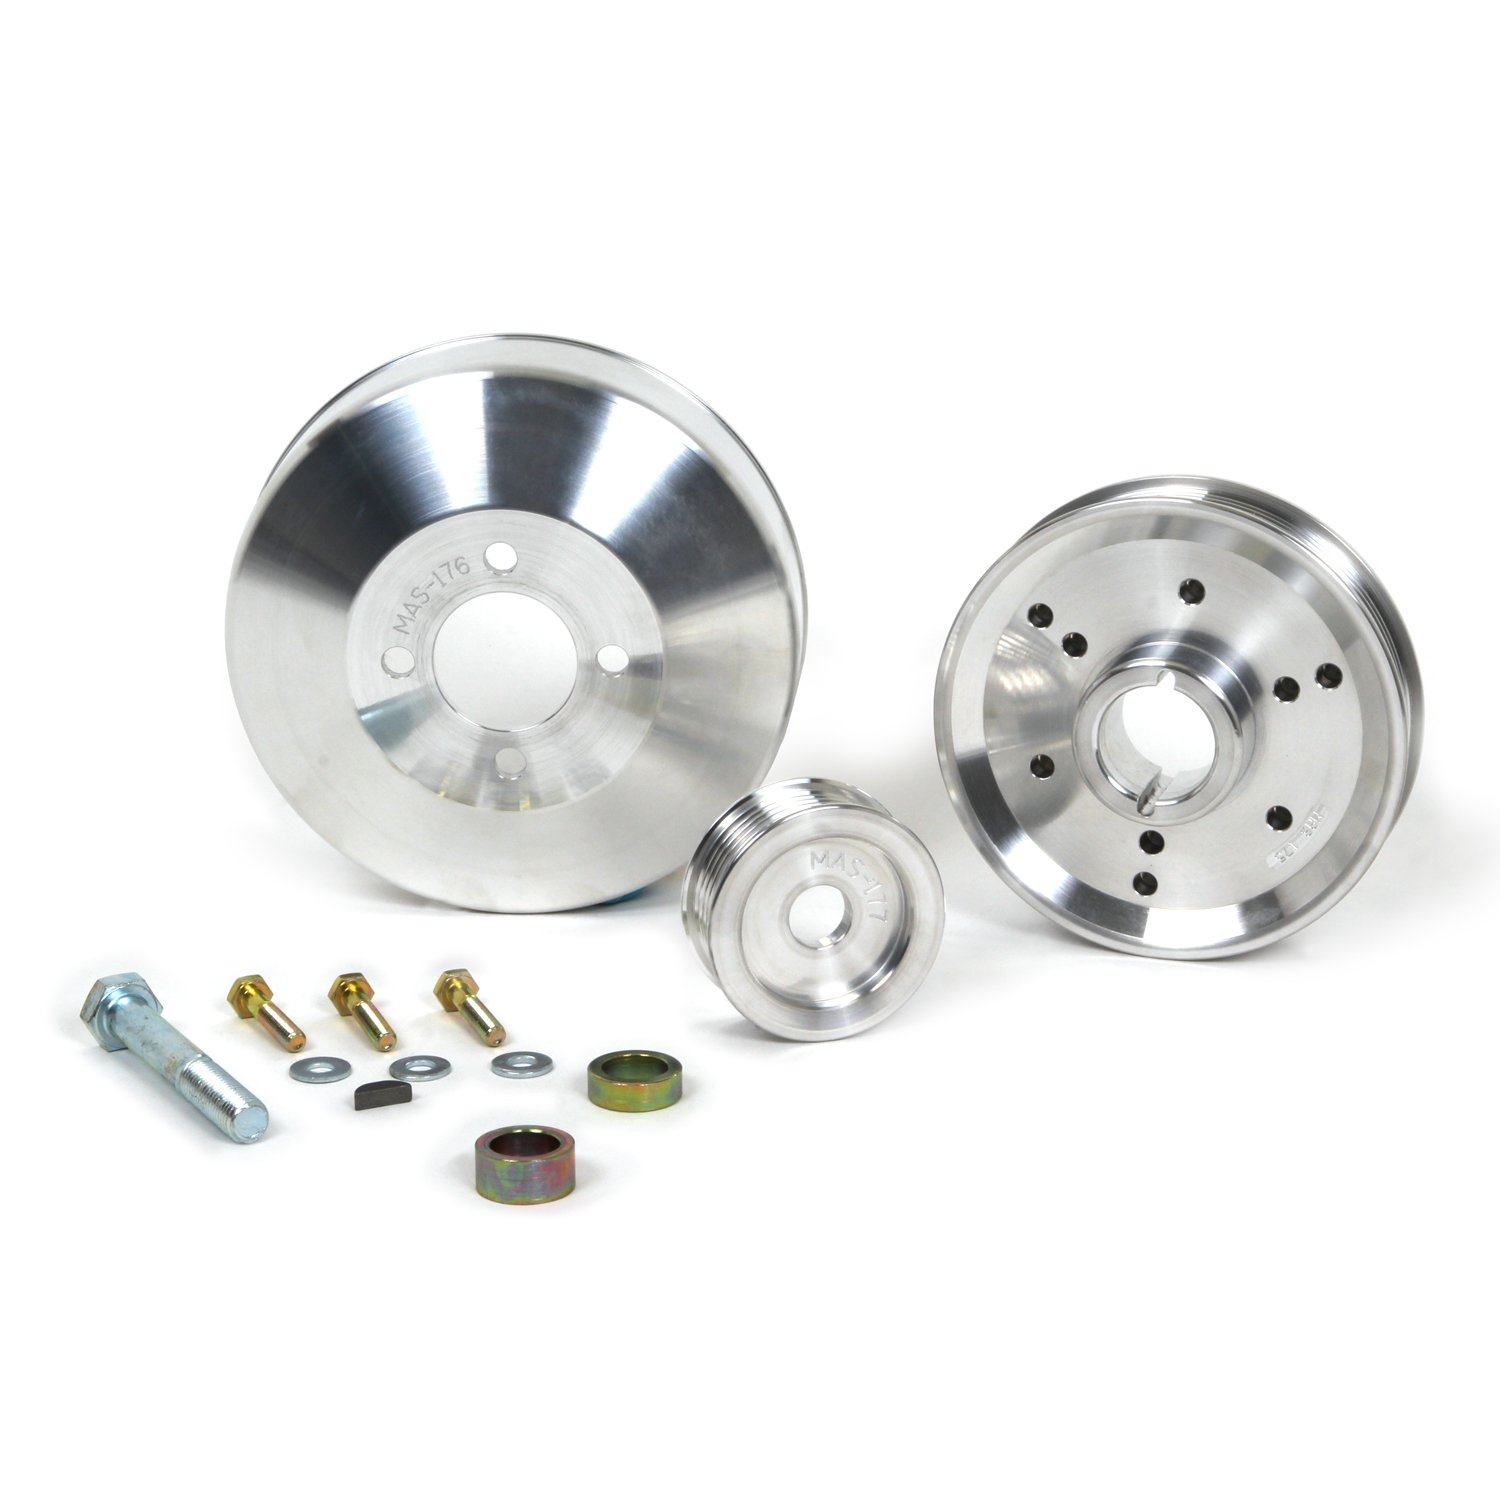 BBK 1555 Underdrive Pulley Kit for Ford Mustang 4.6/ GT/Cobra - 3 Piece Lightweight CNC Machined Aluminum Kit BBK Performance